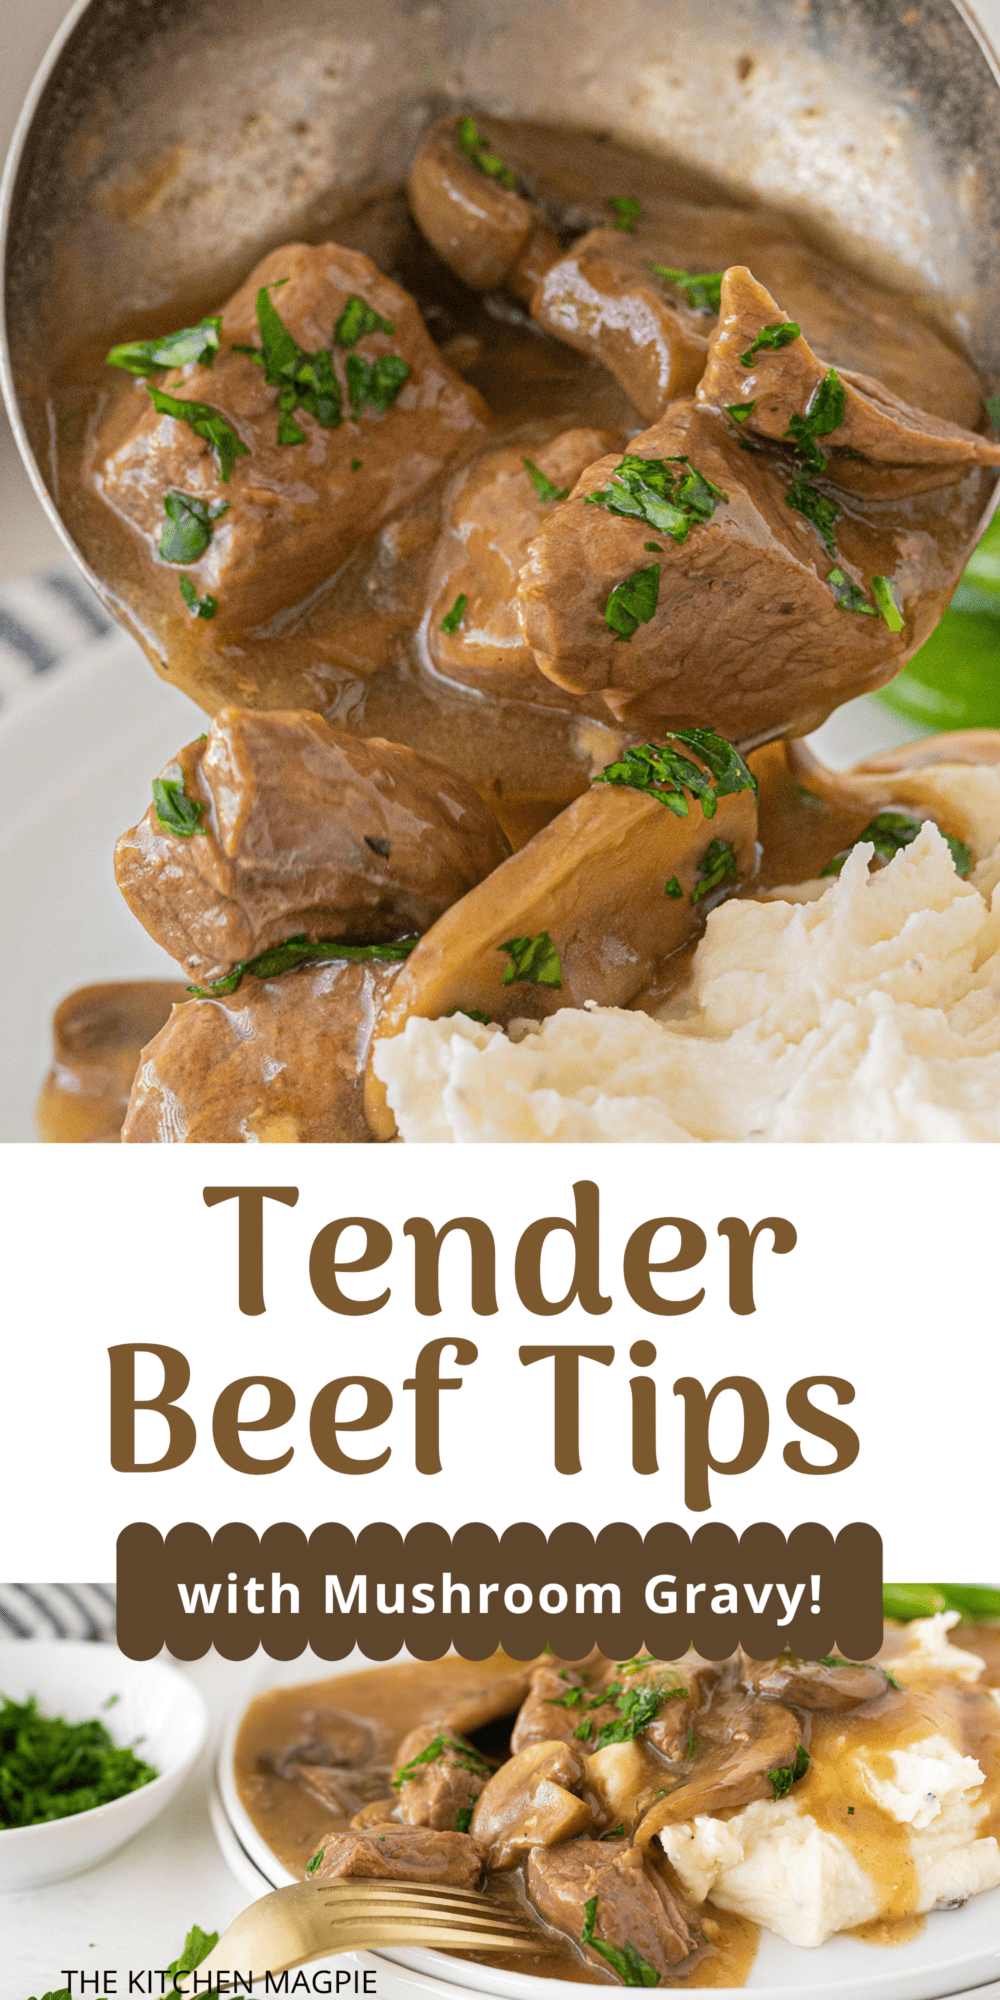 Decadent beef tips and gravy loaded with mushrooms and delicious flavor is served over mashed potatoes for the perfect meal the whole family will love.